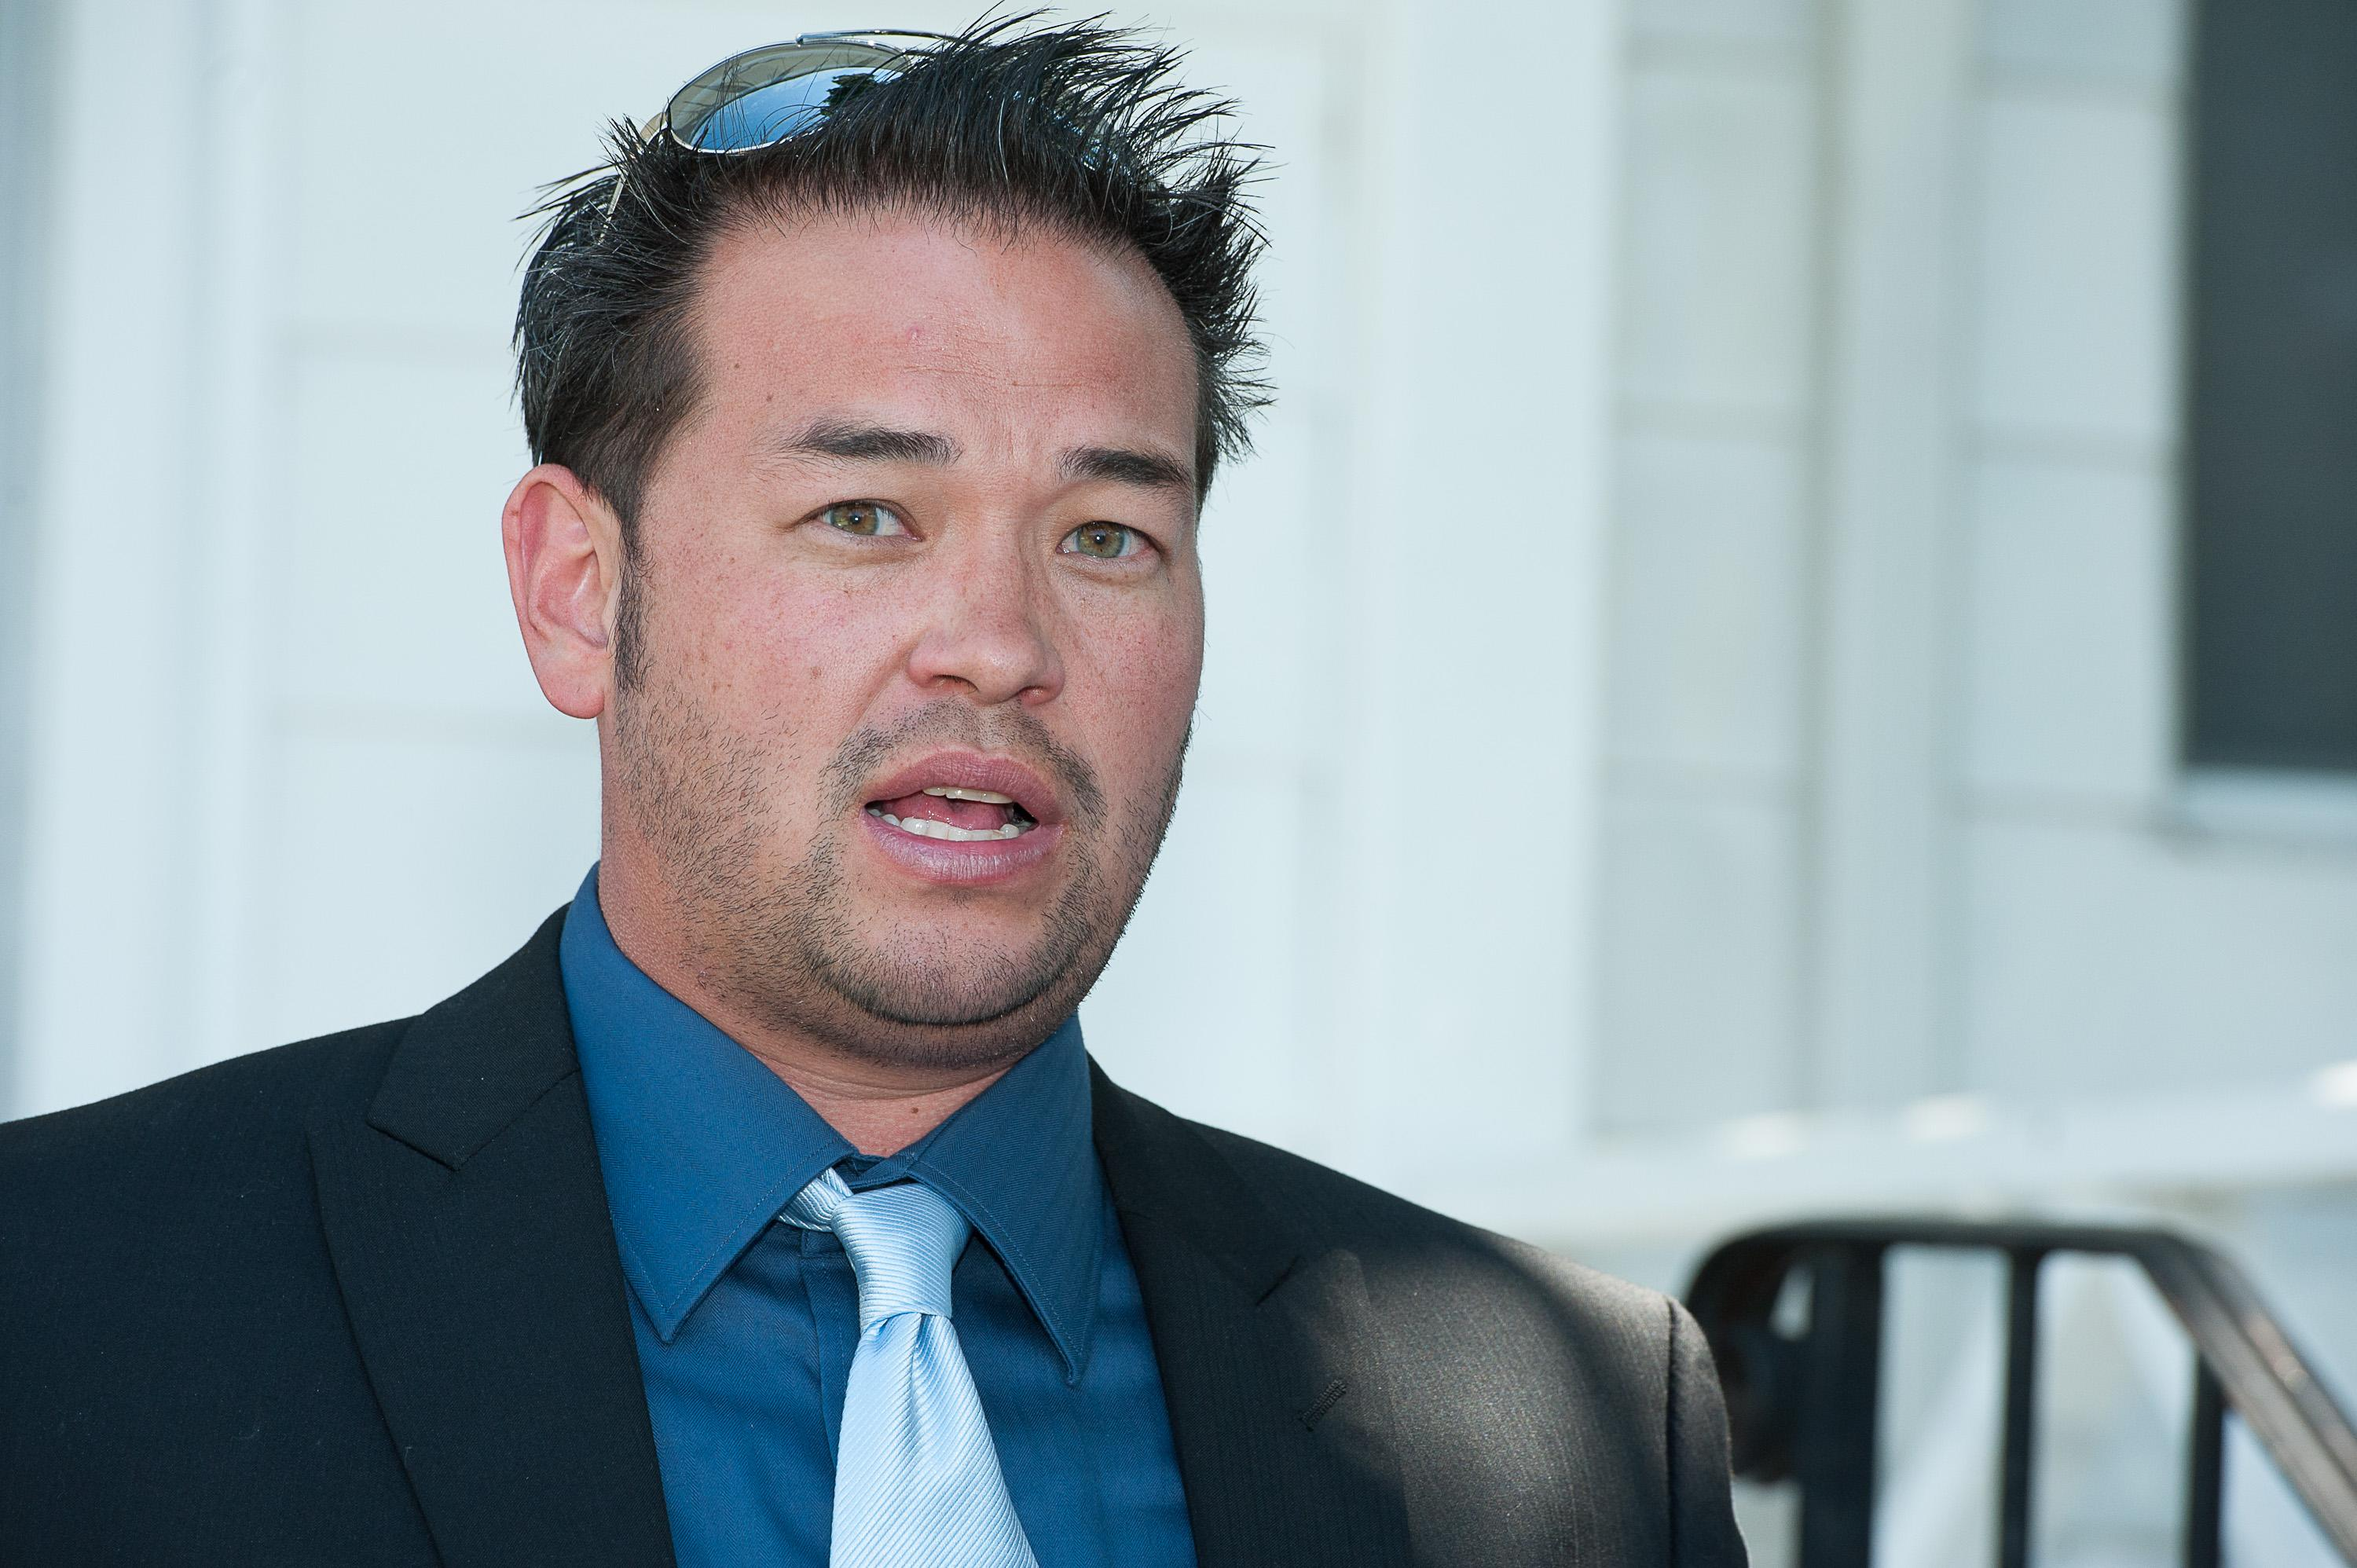 Watch Jon kate plus some police officers equals crushing inevitability video